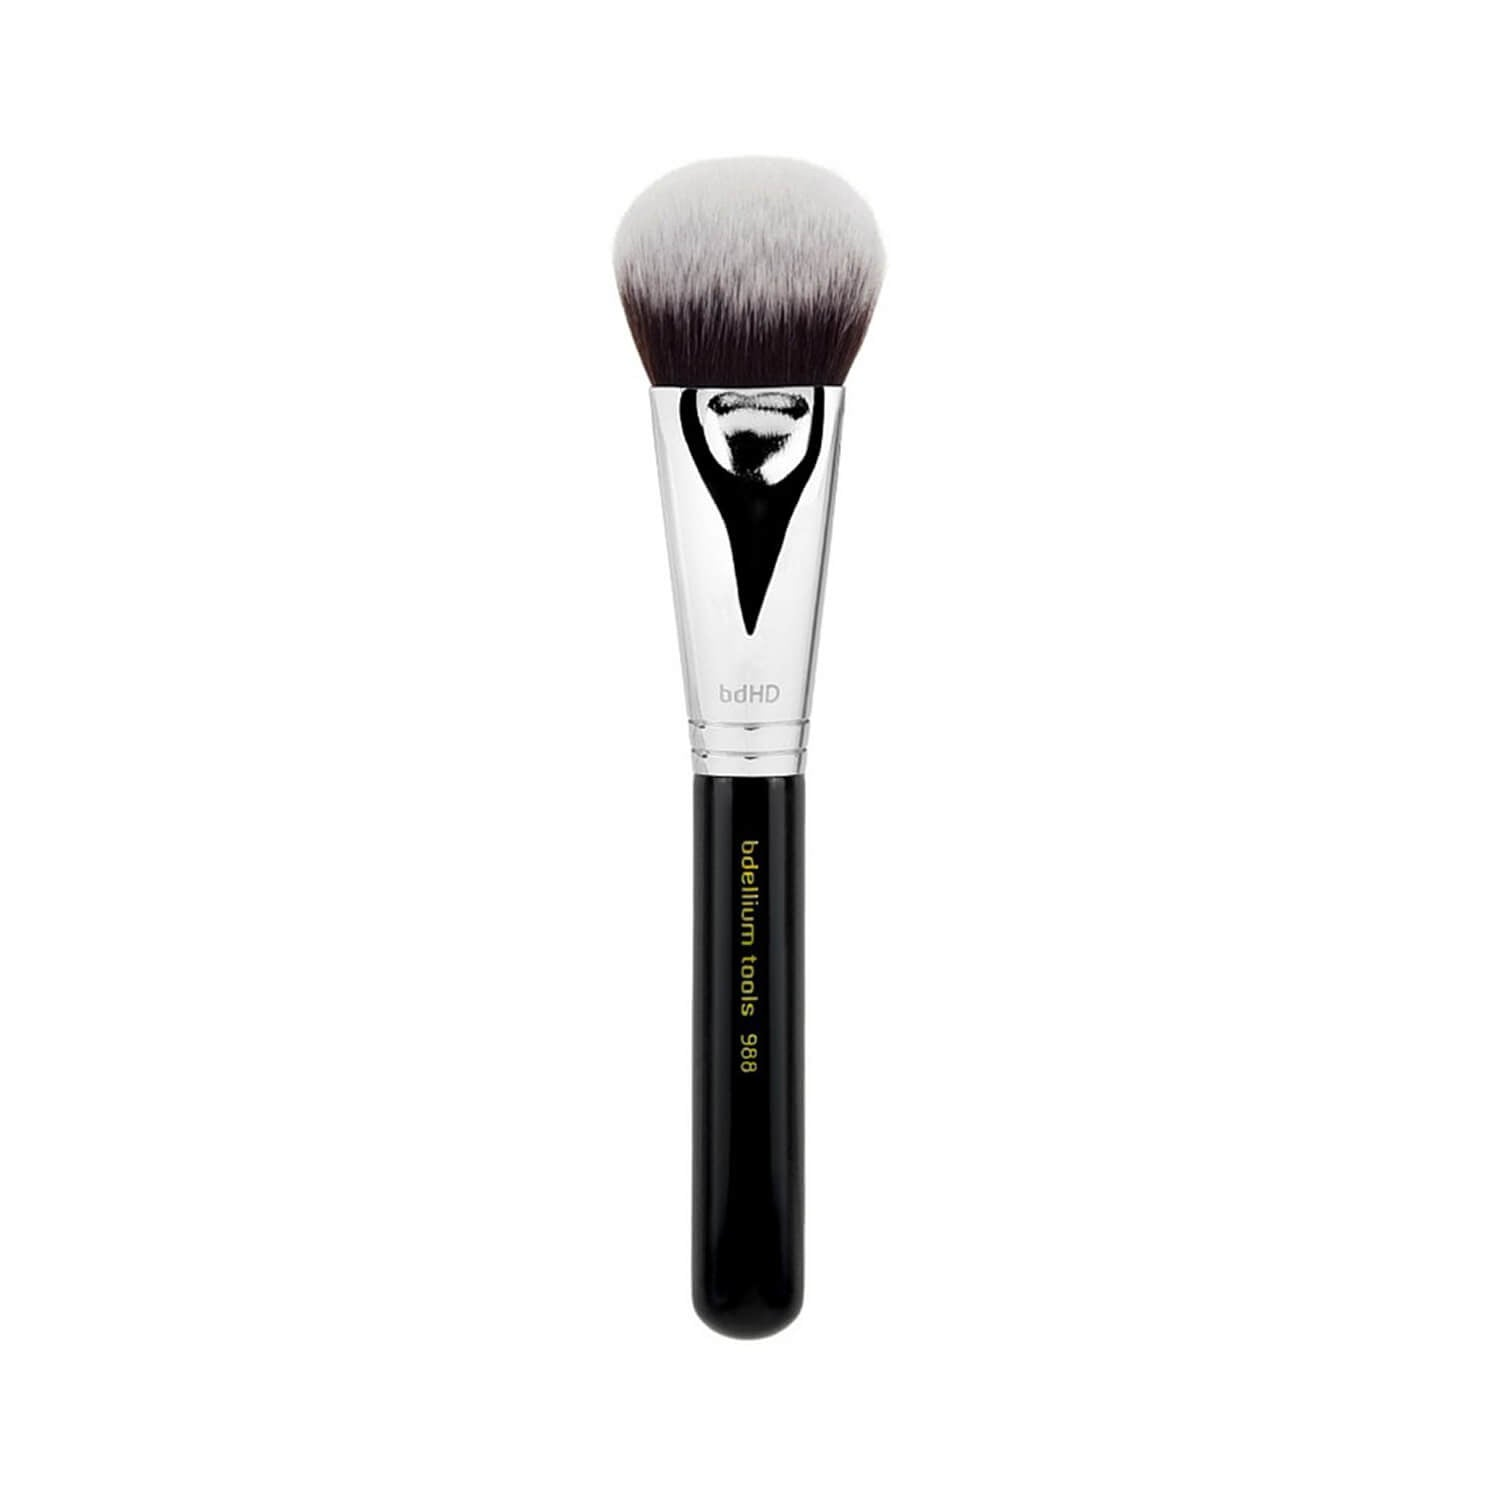 BDellium Tools Maestro Line 988 BDHD Phase I Large Foundation Powder Brush